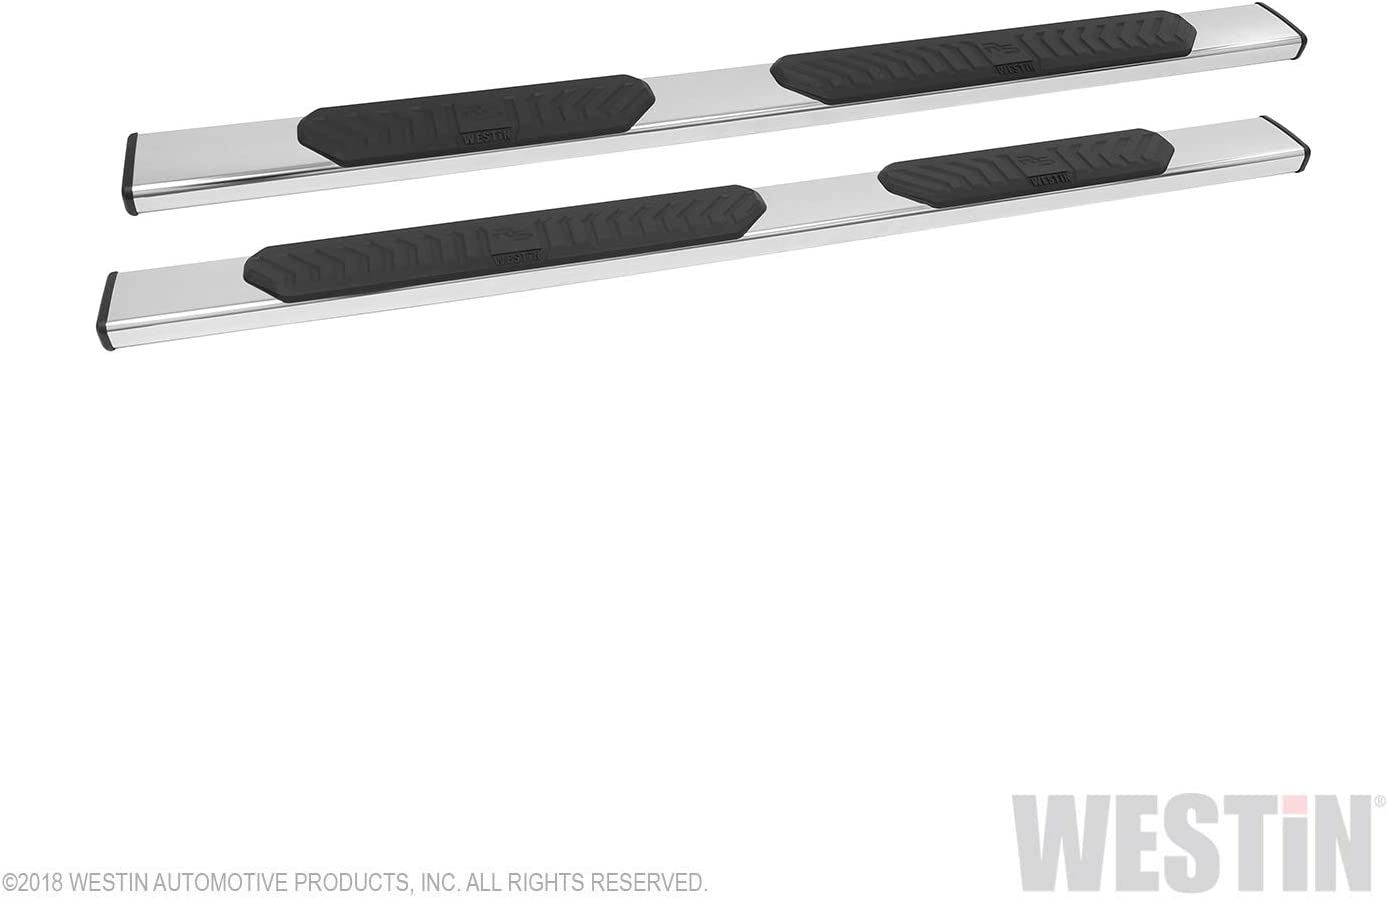 Westin Automotive Products 28-51050 Stainless Steel R5 Nerf Step Bars